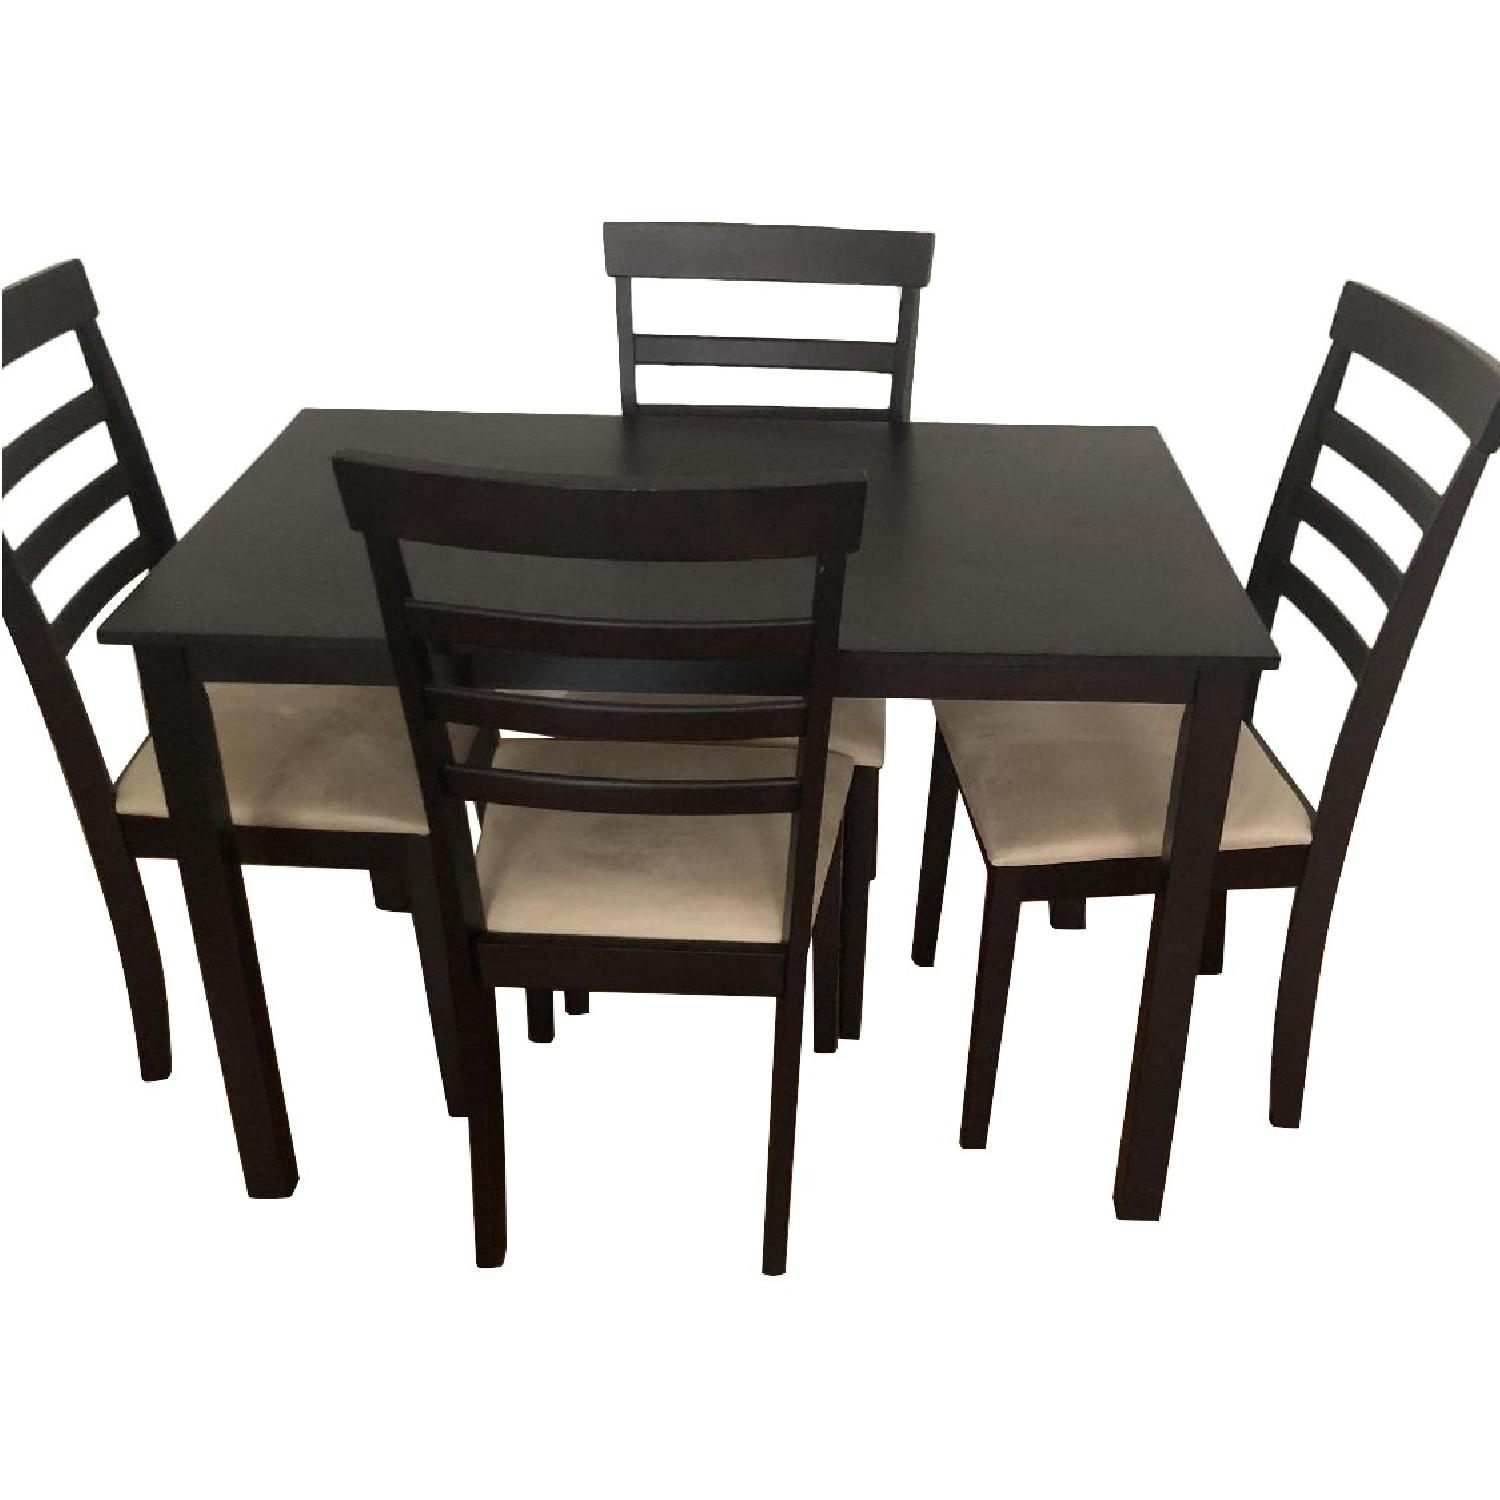 5 Piece Dining Set In Espresso Finish ...